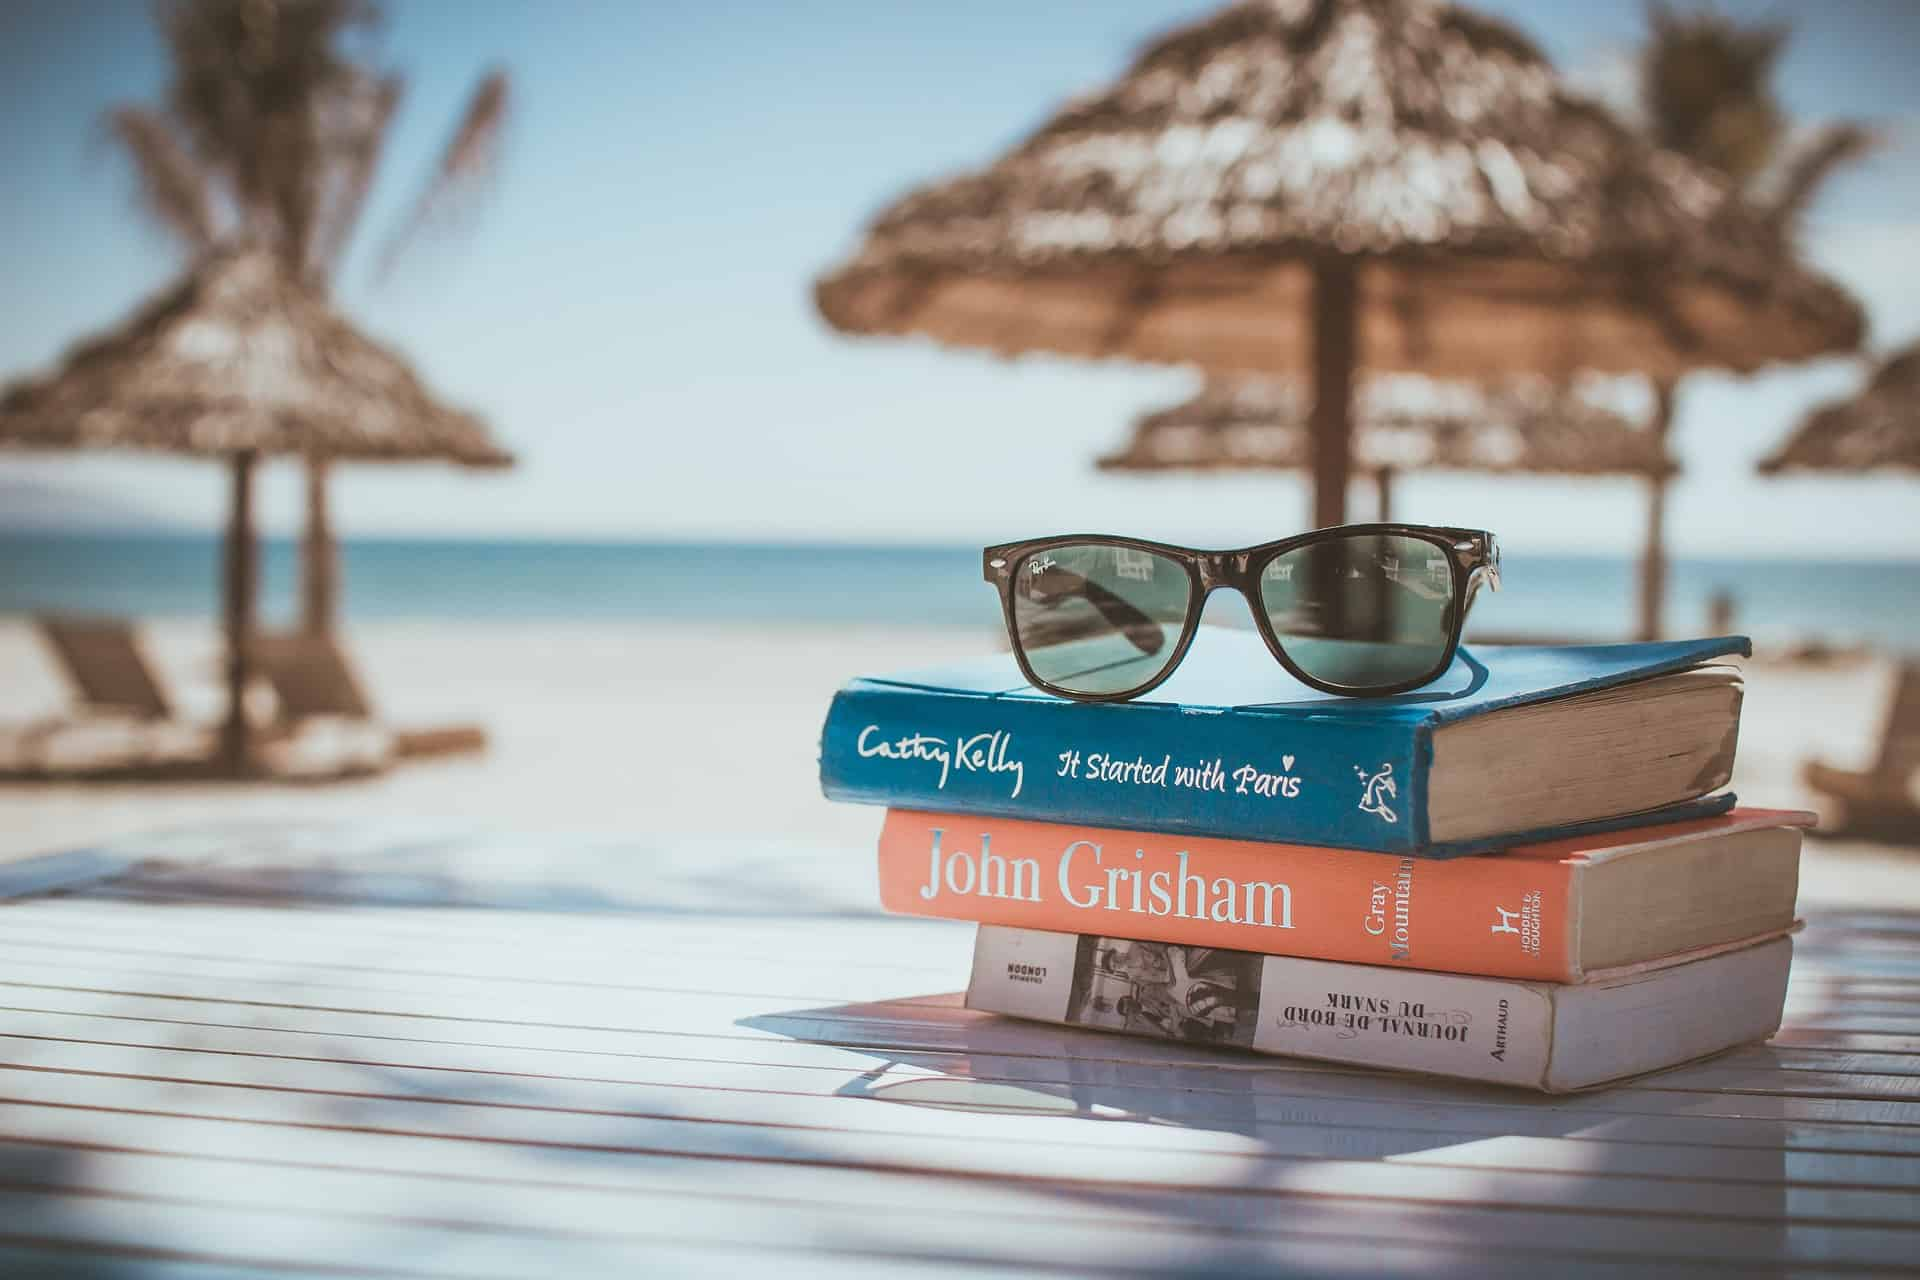 tropical vacation with books and sunglasses